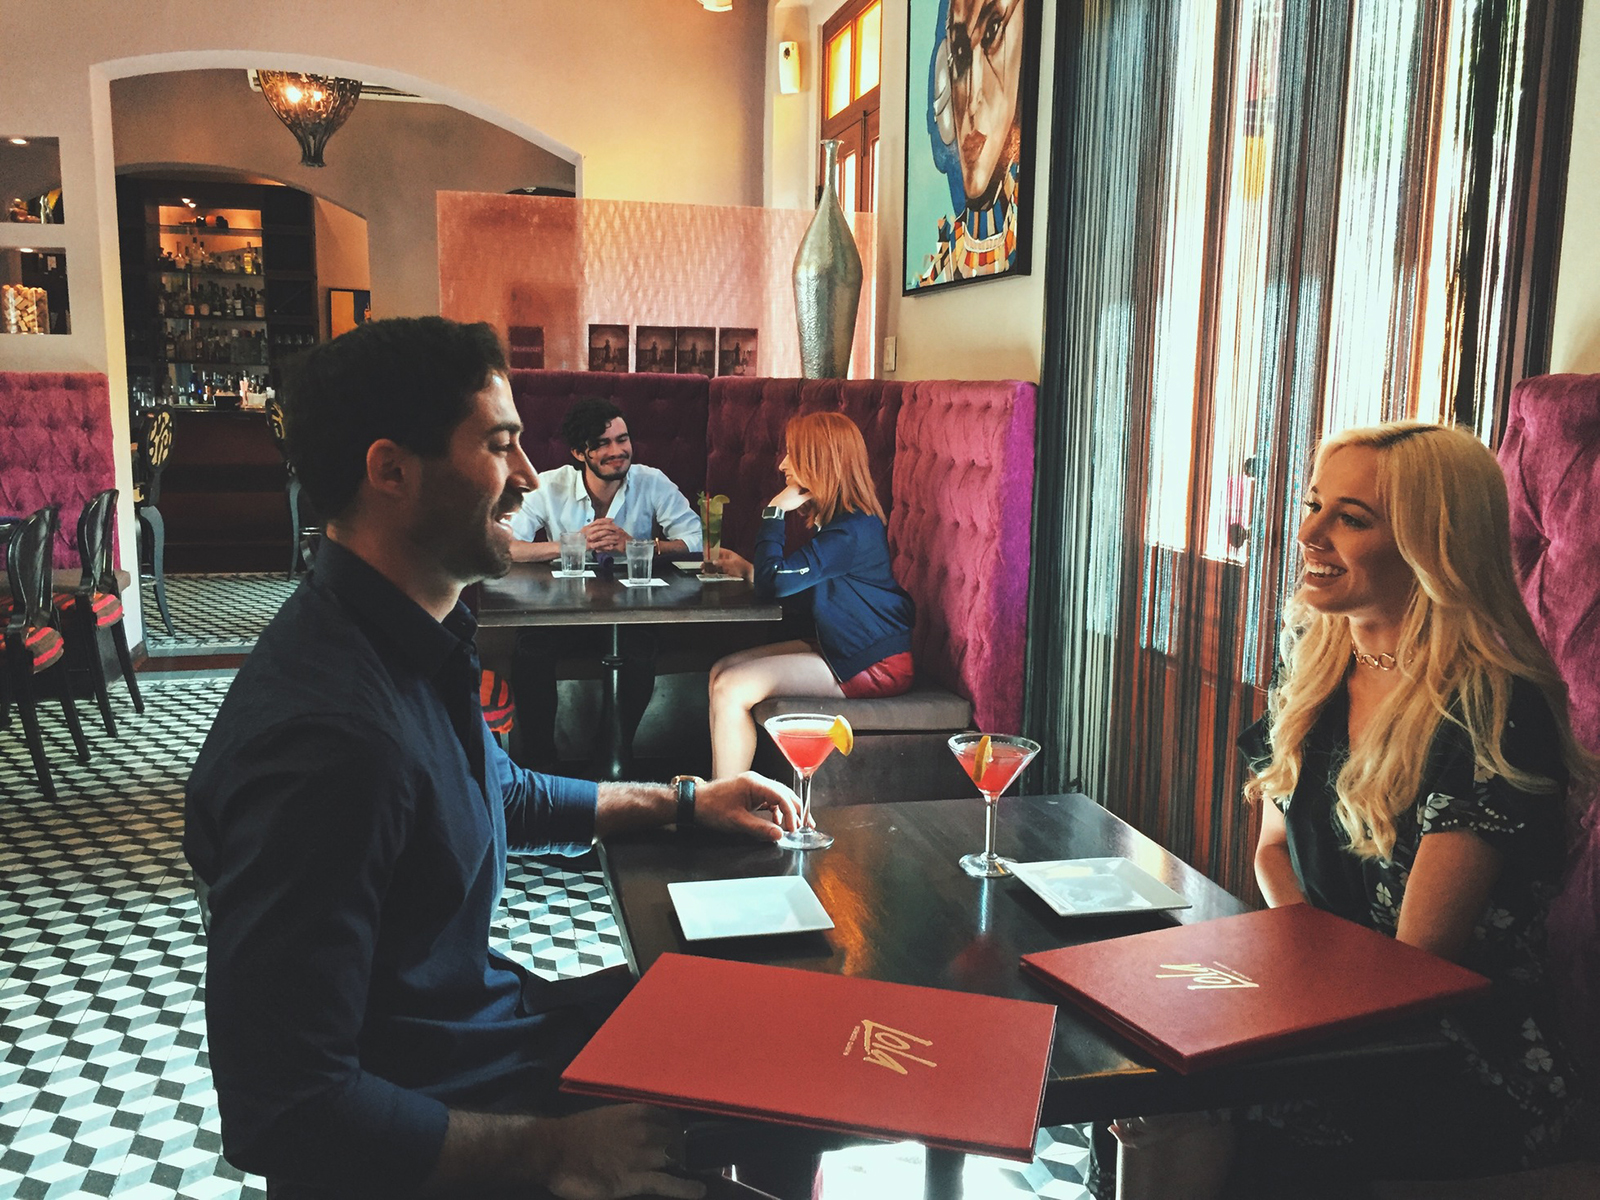 A couple enjoys their cocktails at a restaurant in Ponce.